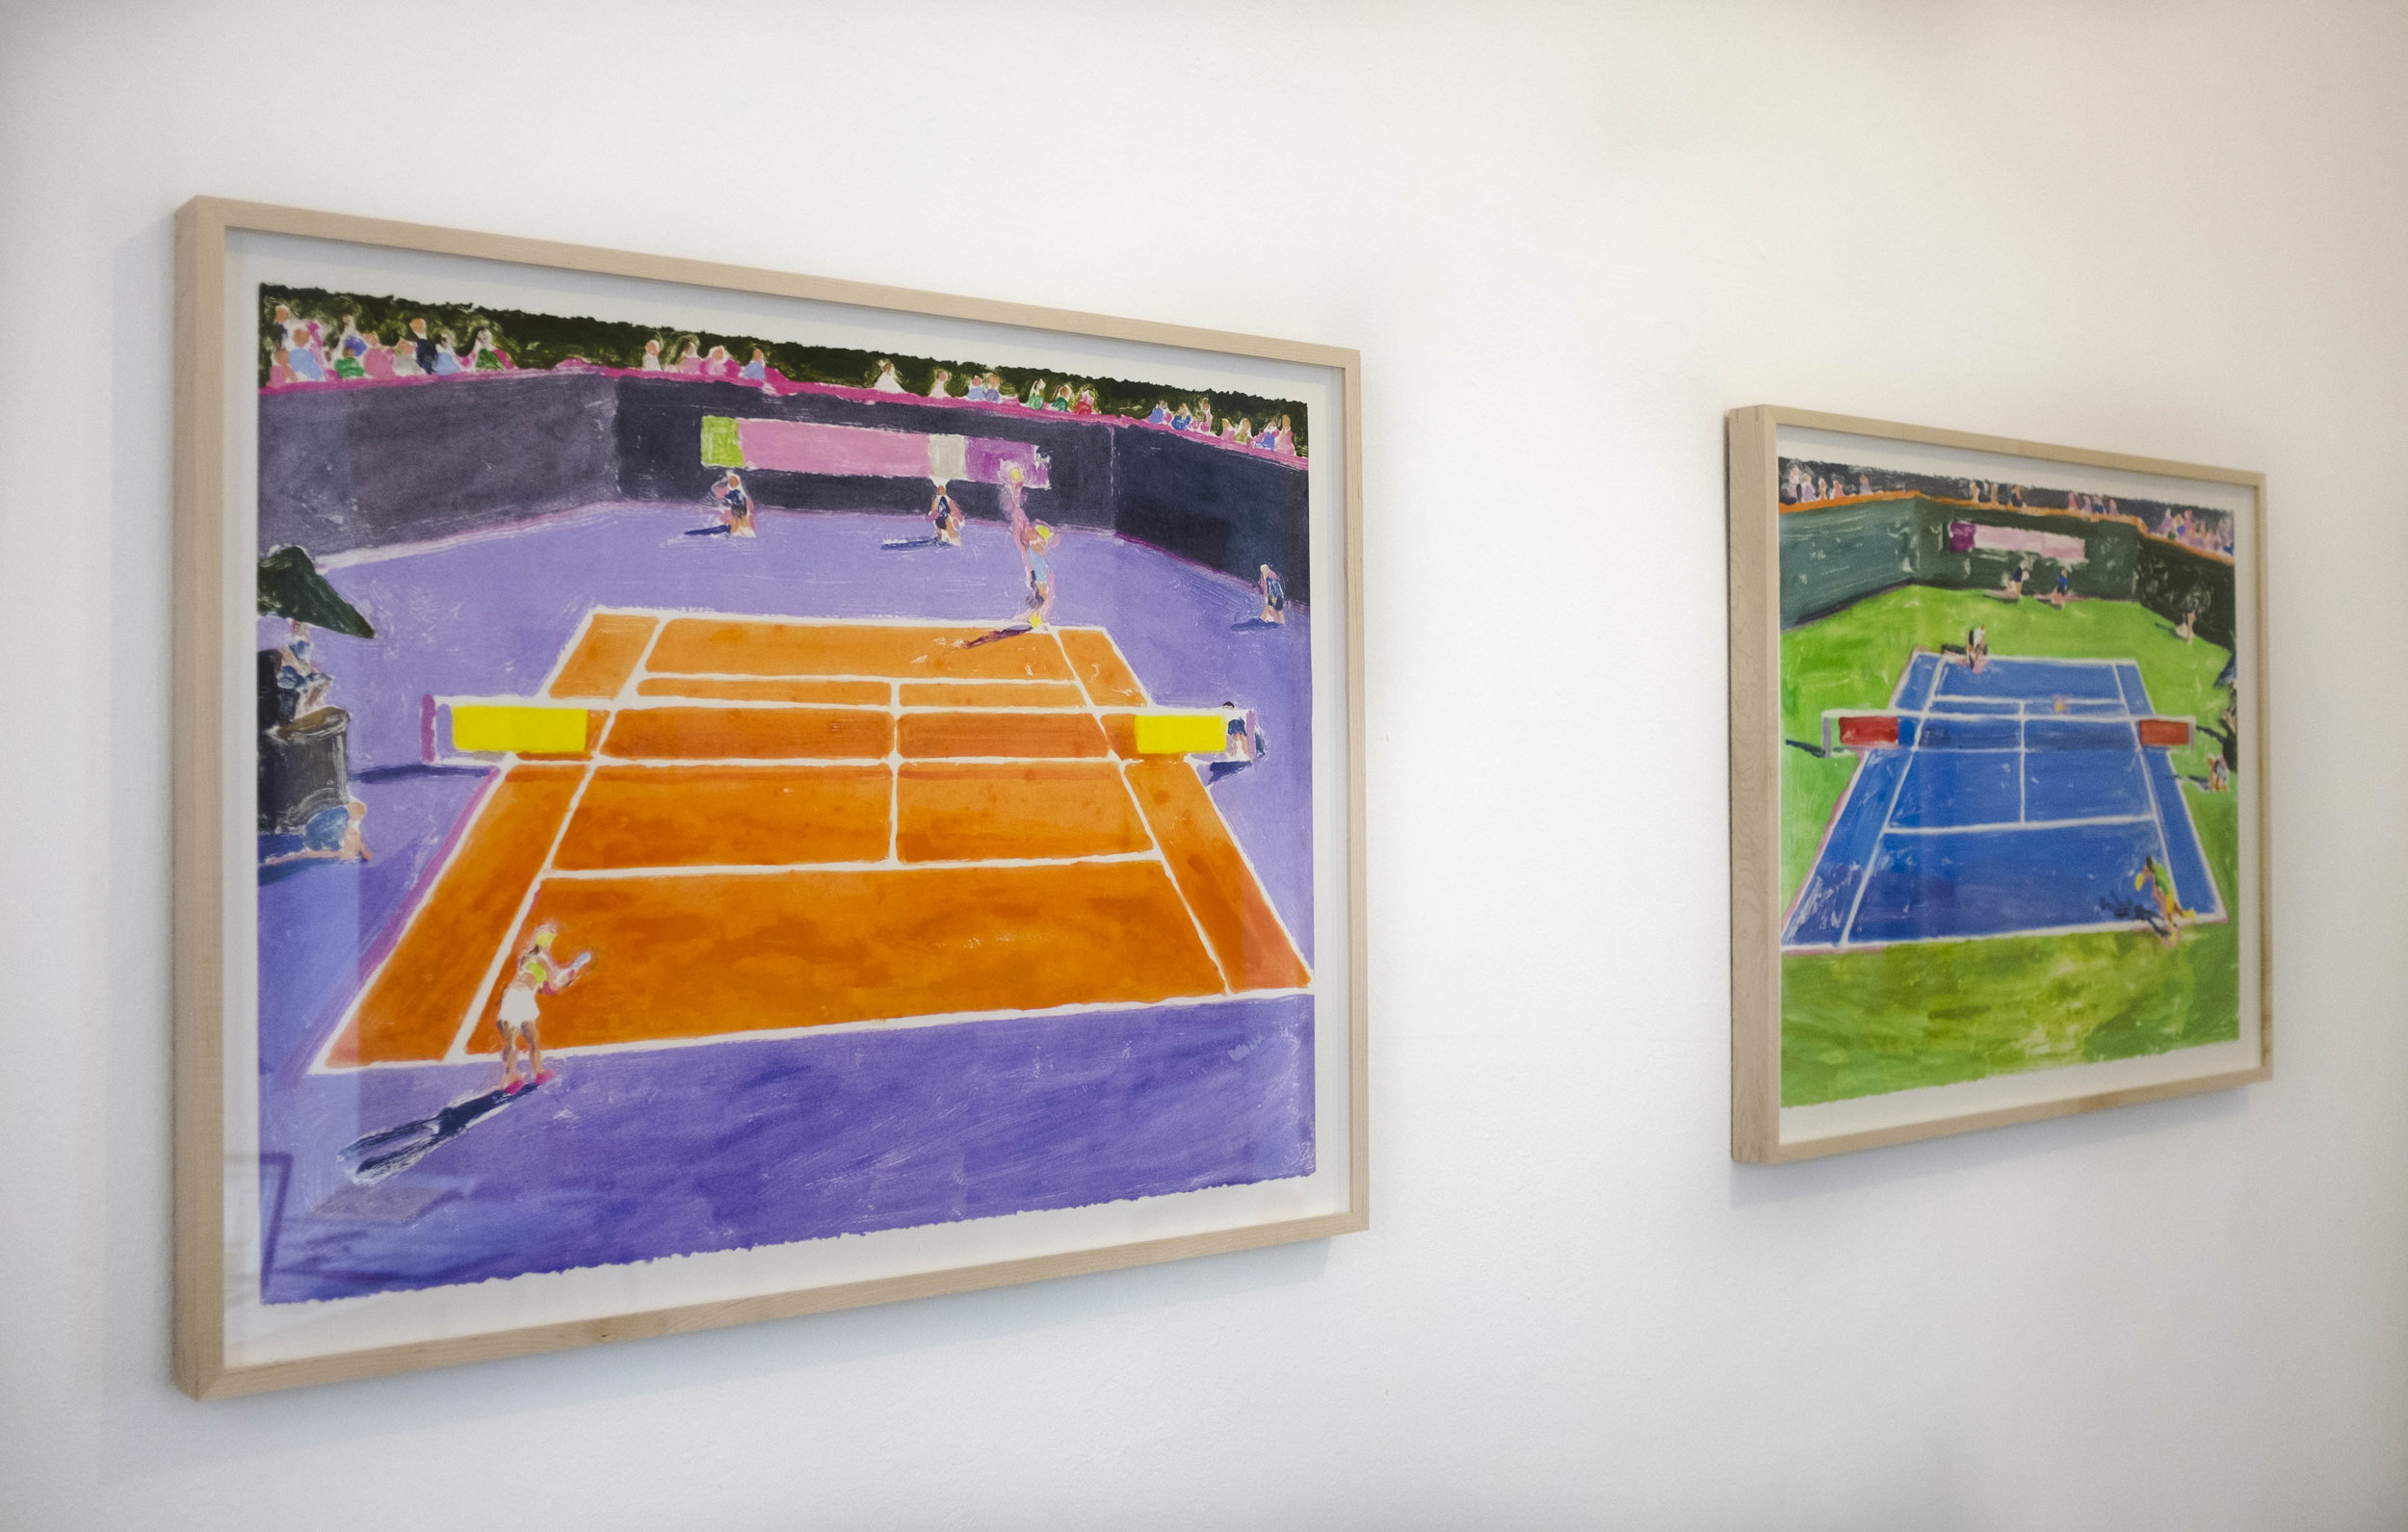 Courts 1 and 2, 2017